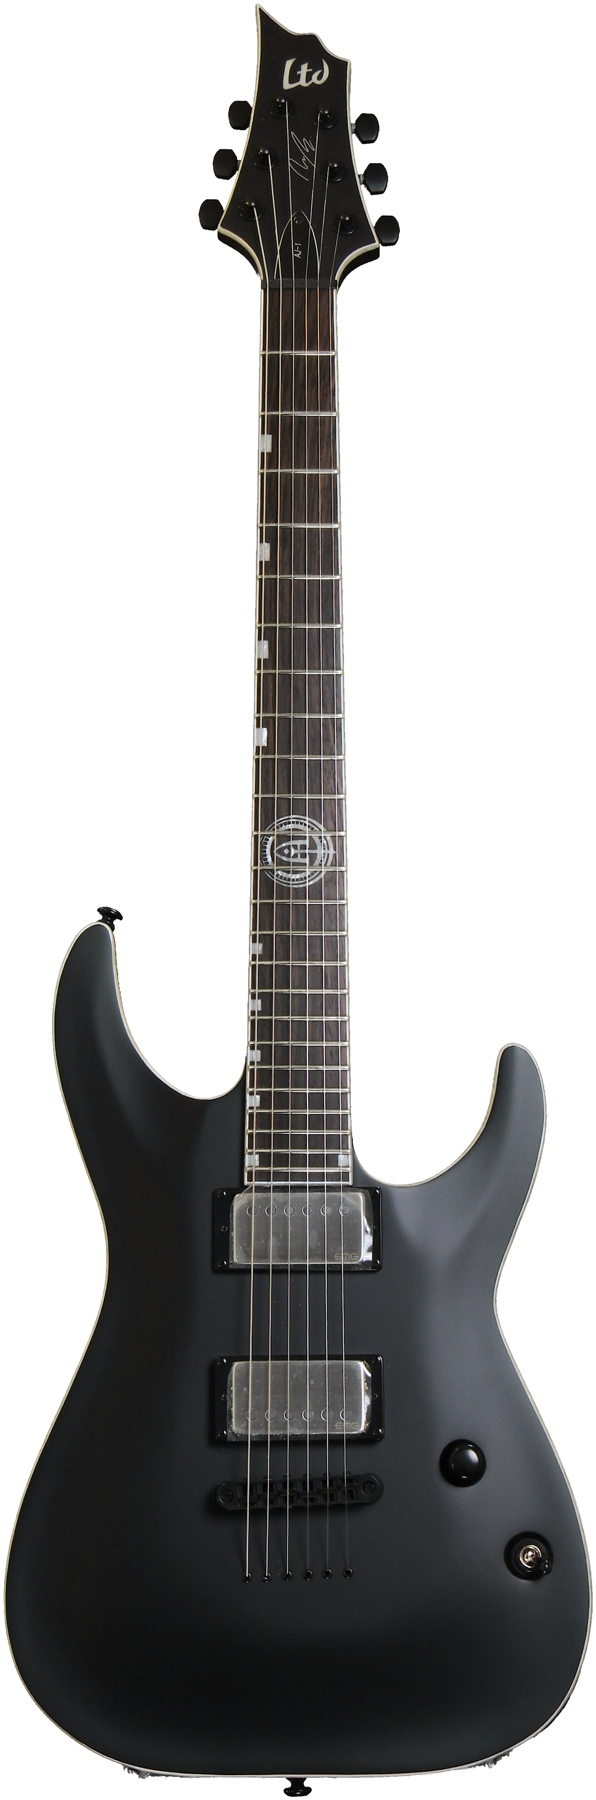 ESP LAJ1BLKS LTD AJ-1 Andy James Electric Guitar Signature Series with Black Satin Finish